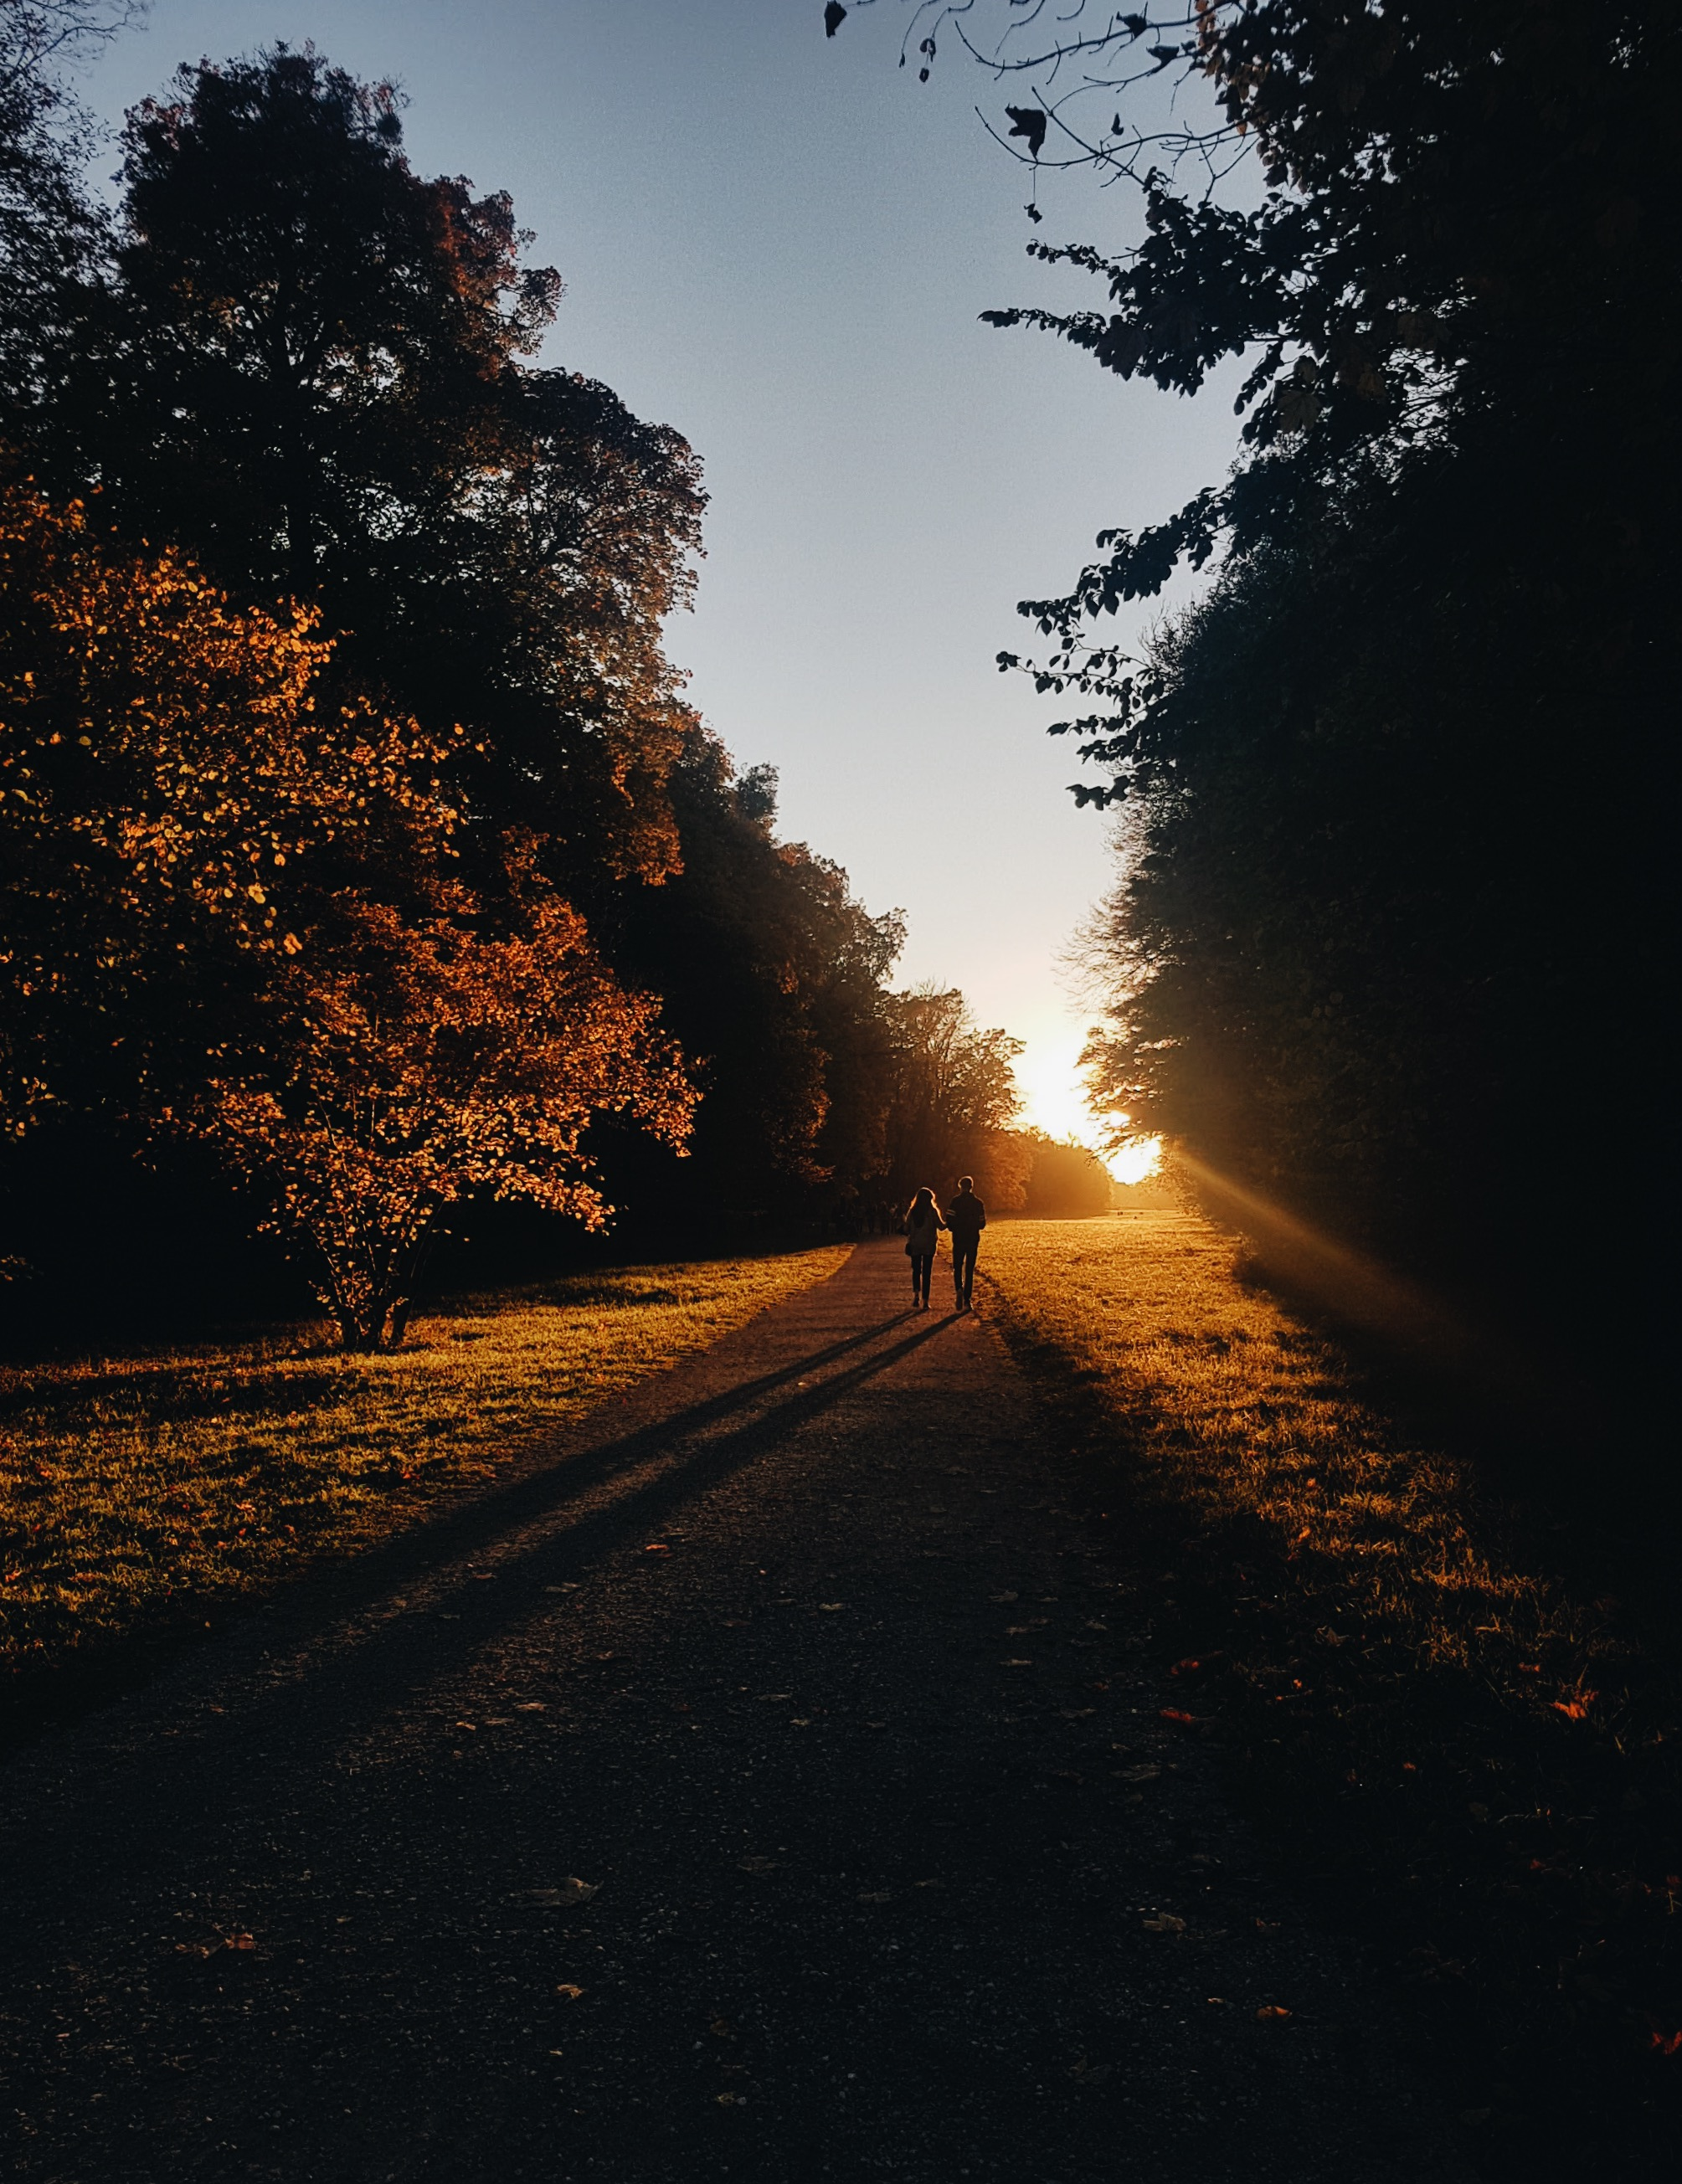 couple walking on road surrounded by trees during sunset